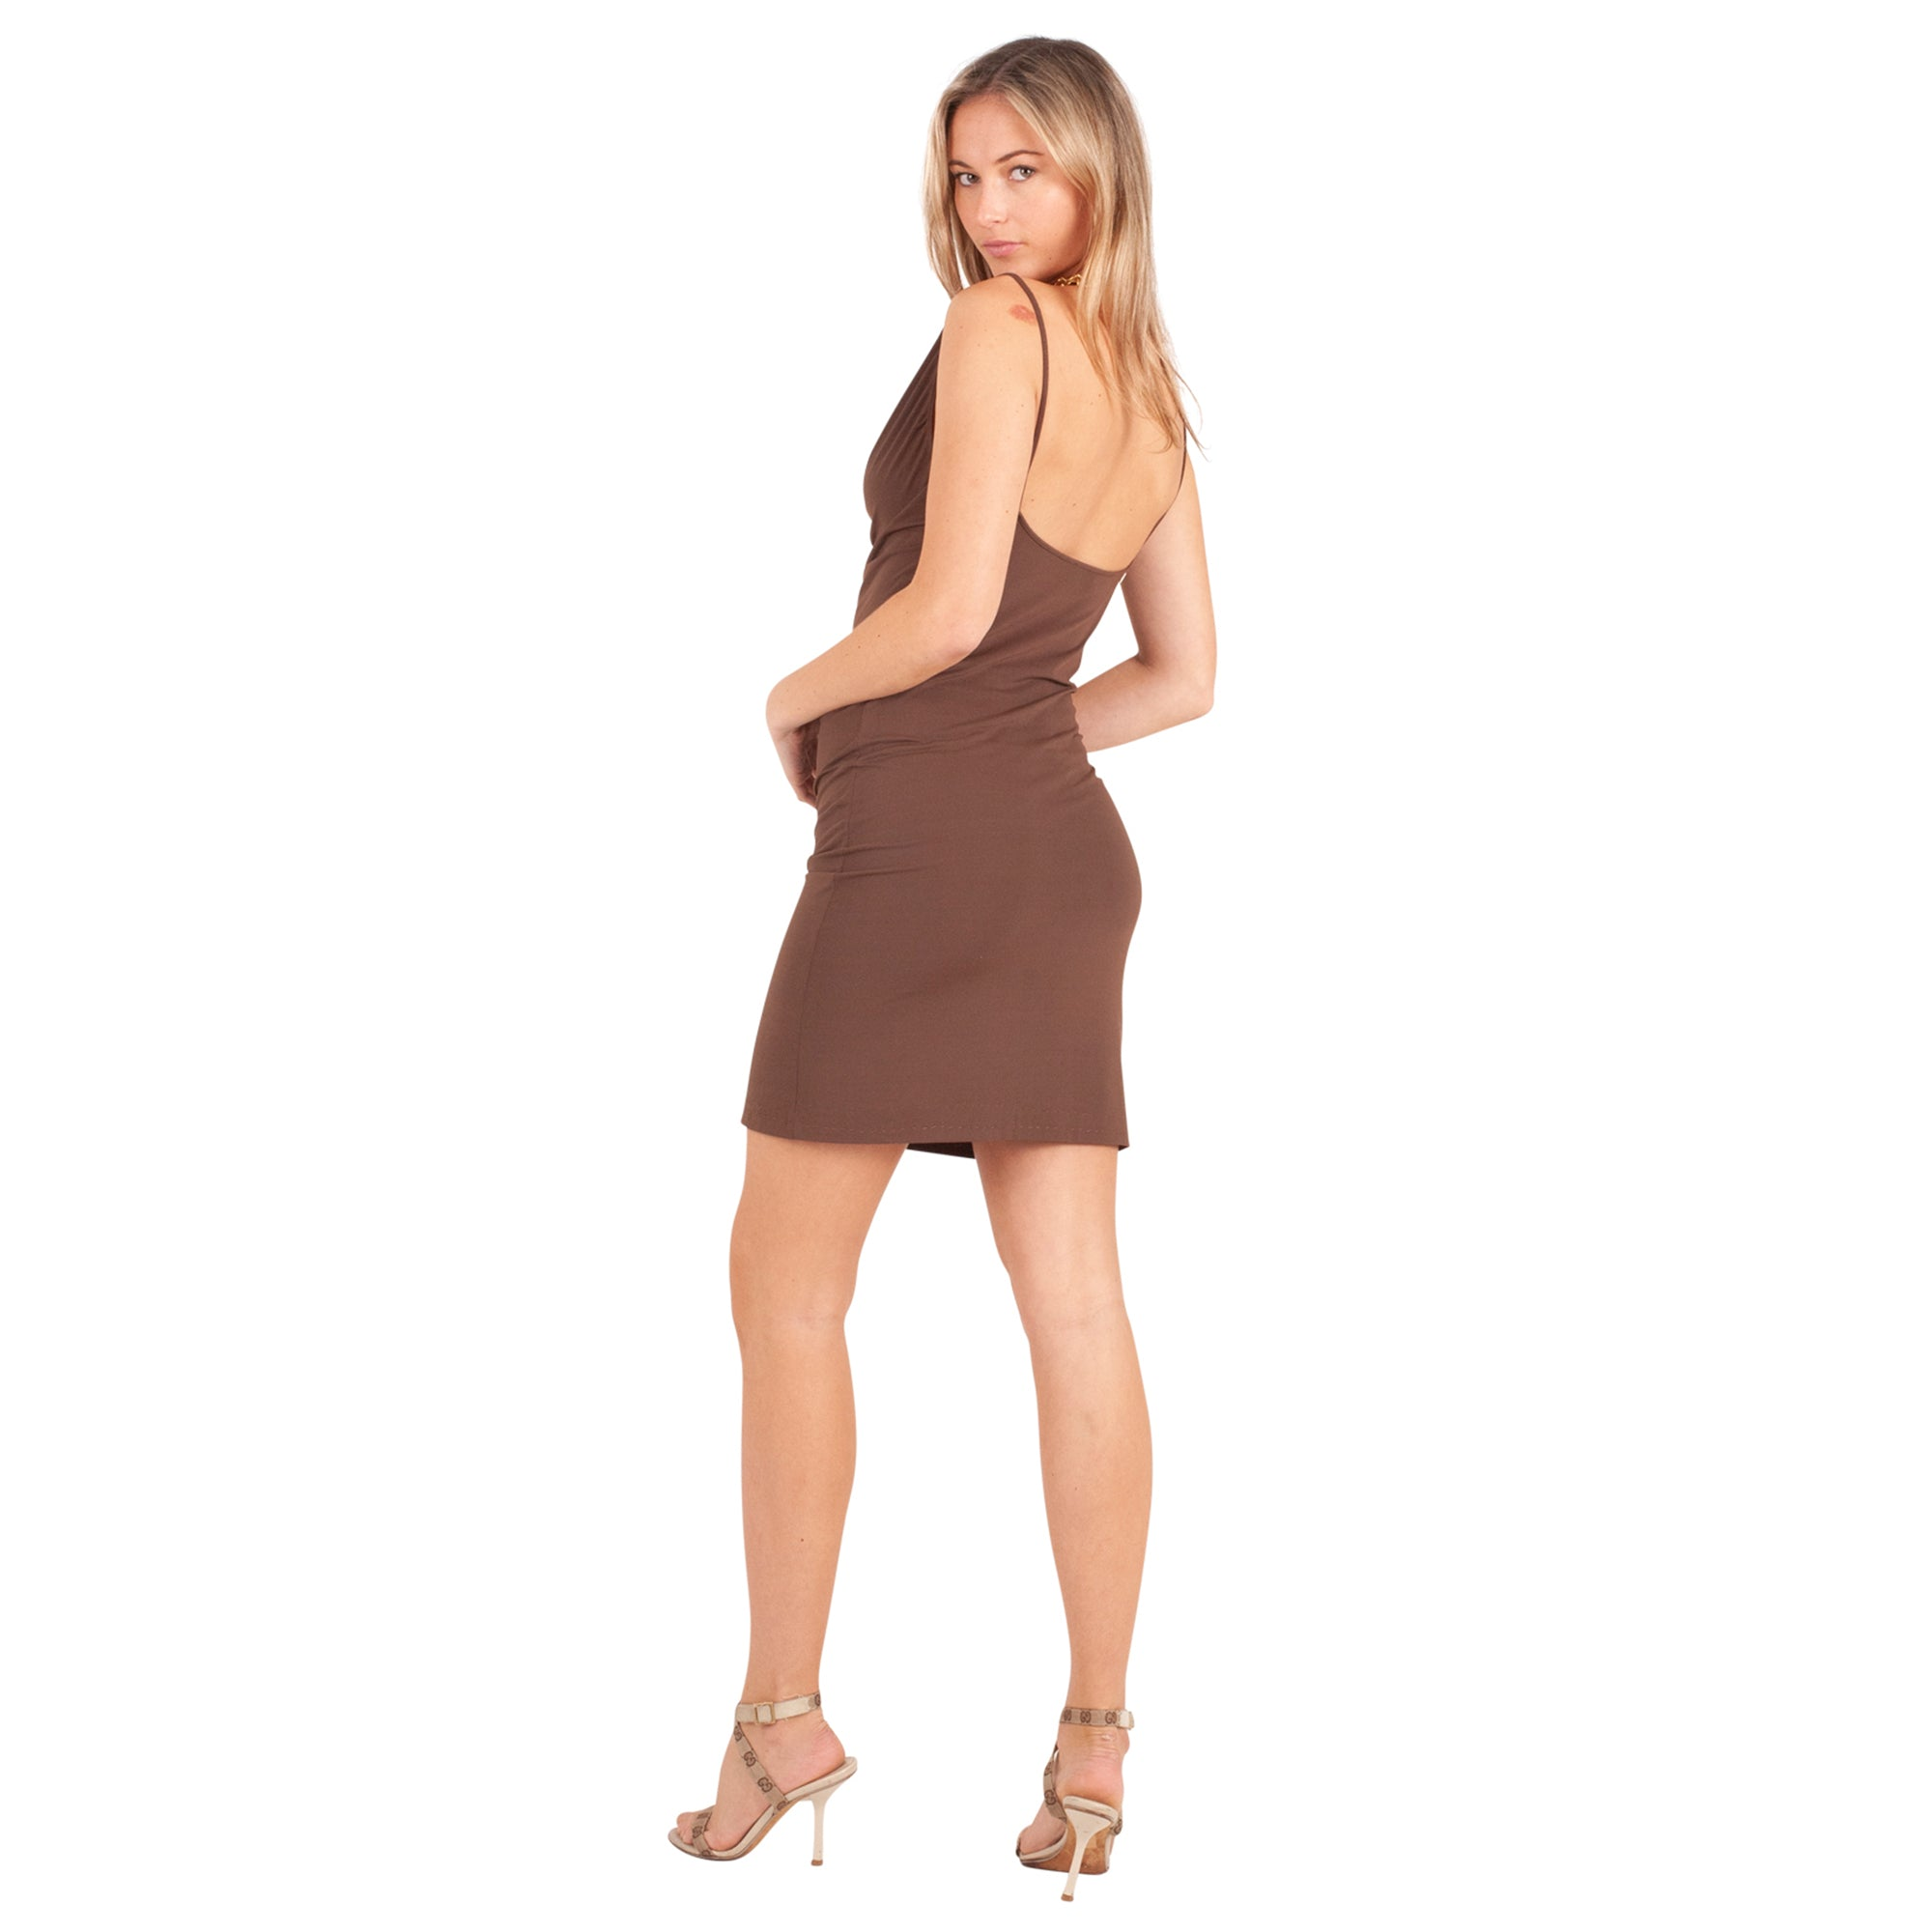 Fendi Mini Dress (Brown) UK 10